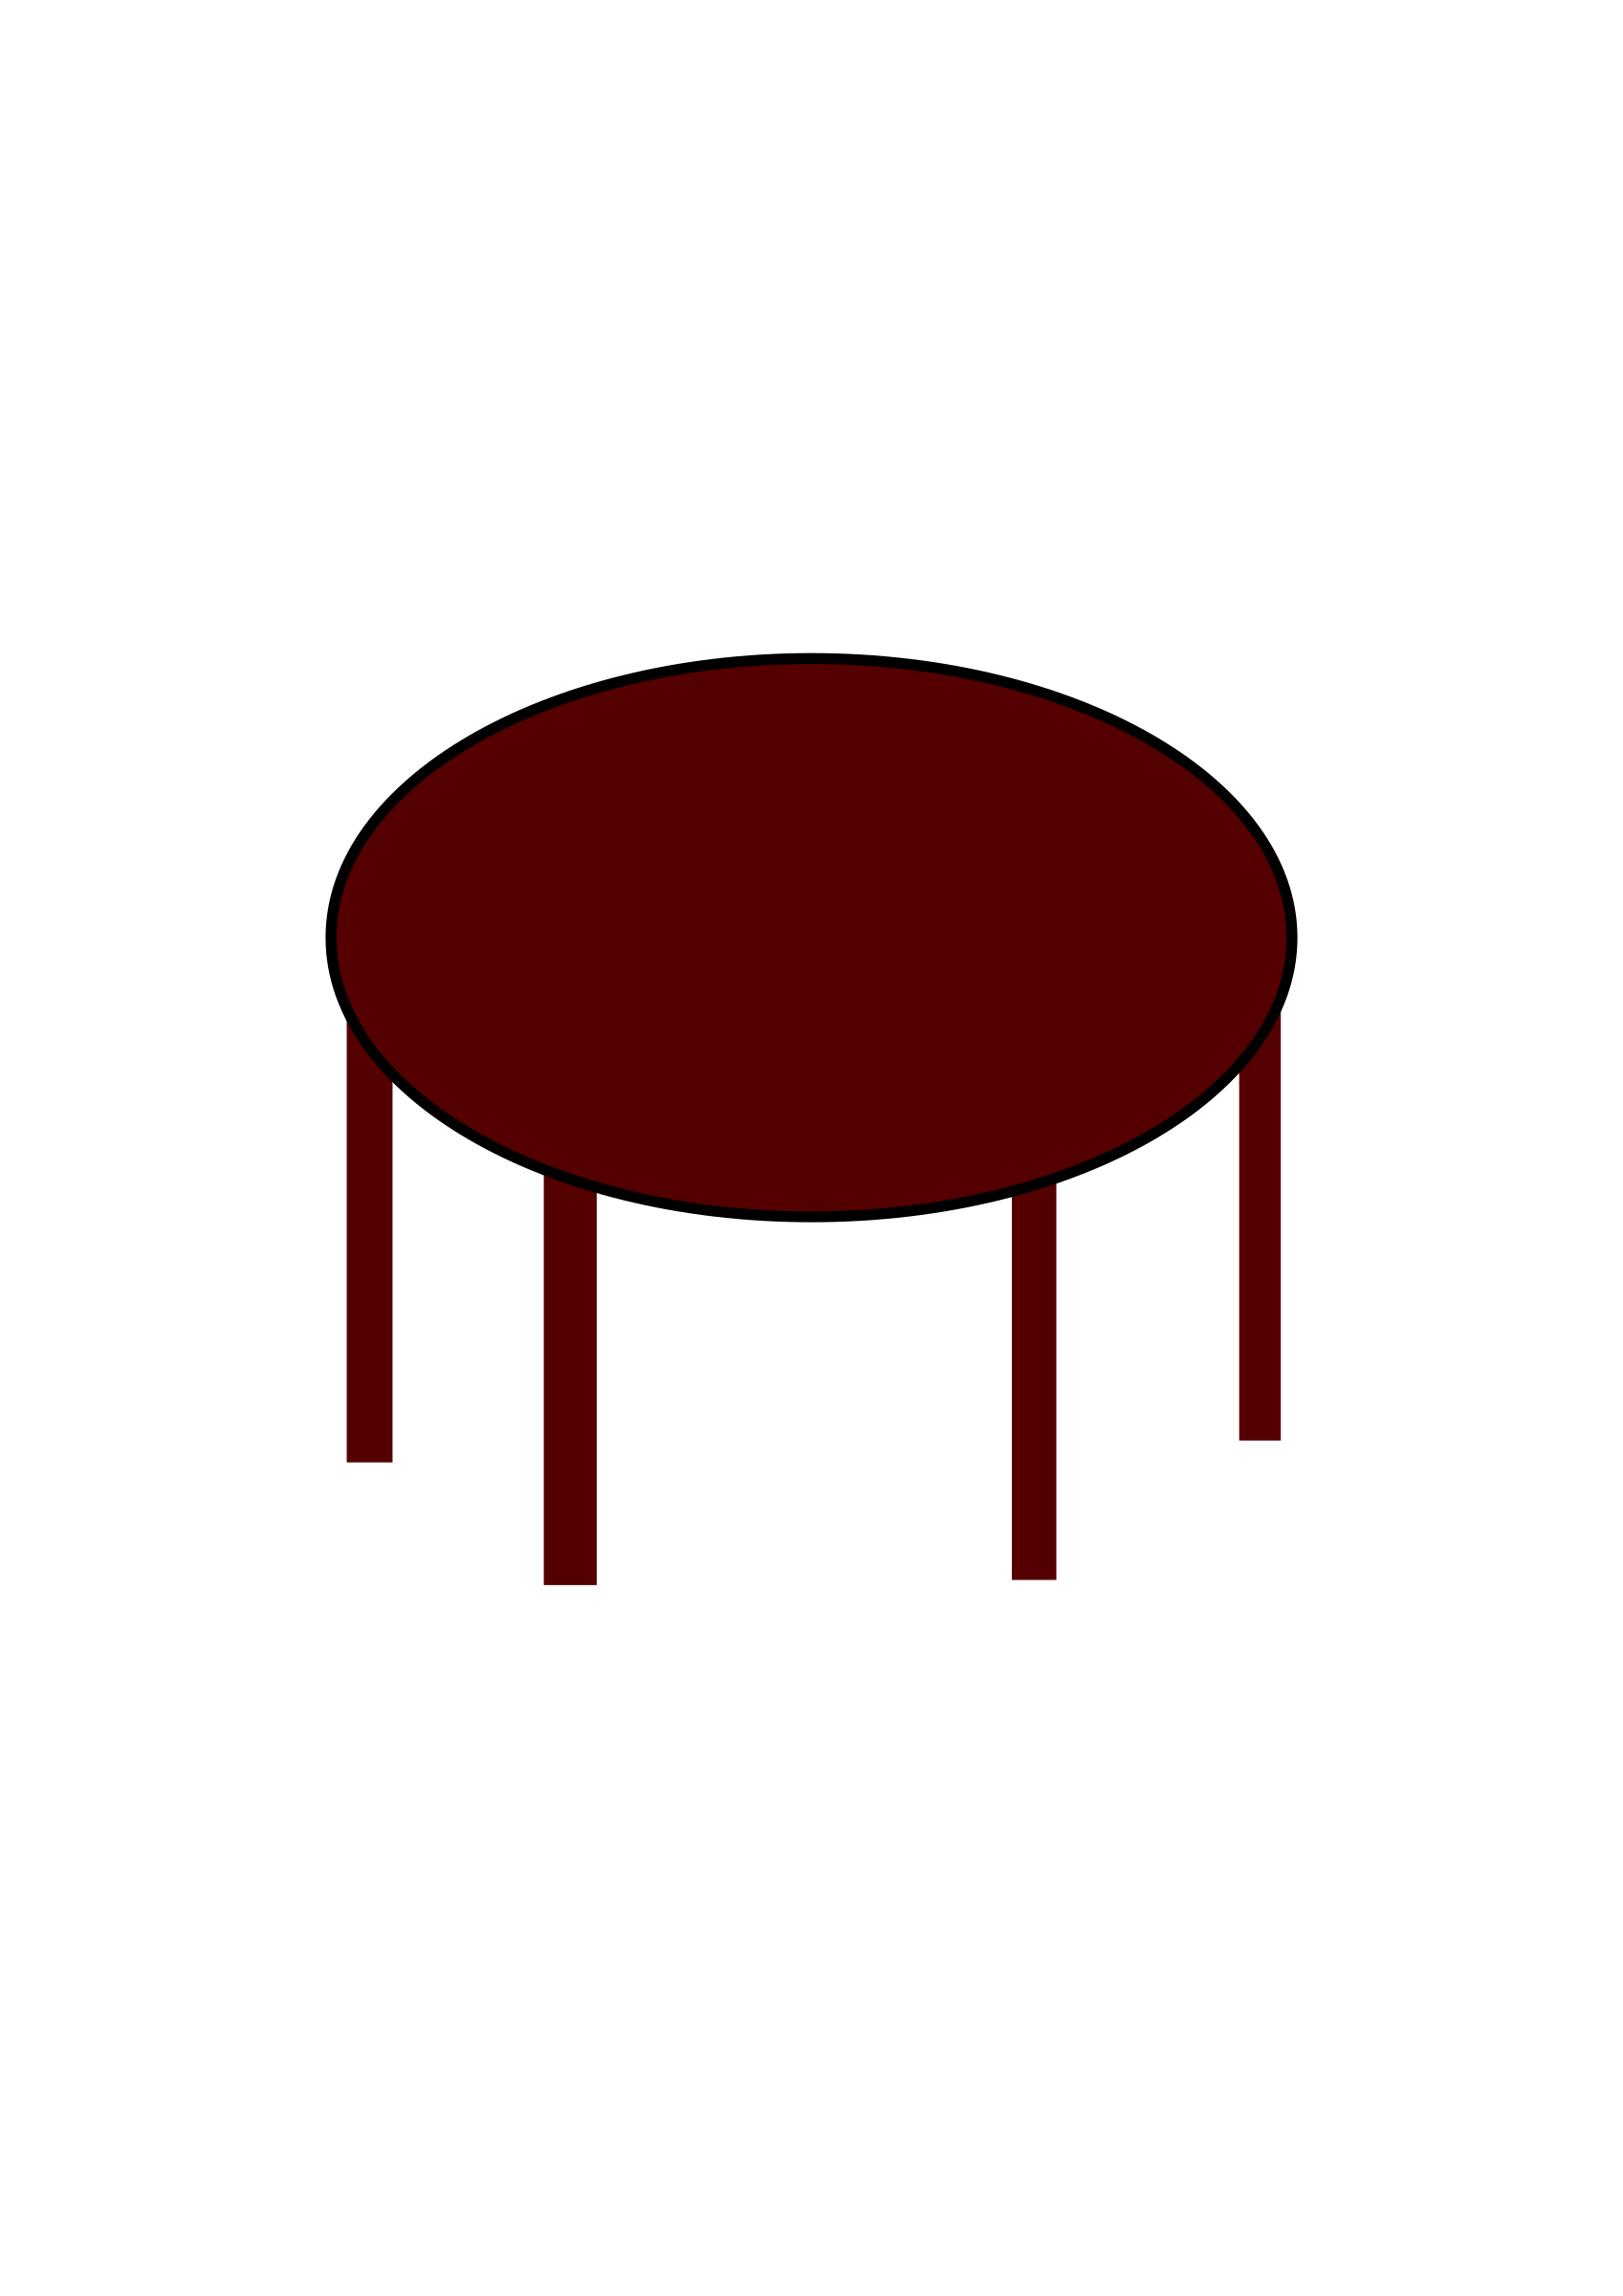 Table by athithya